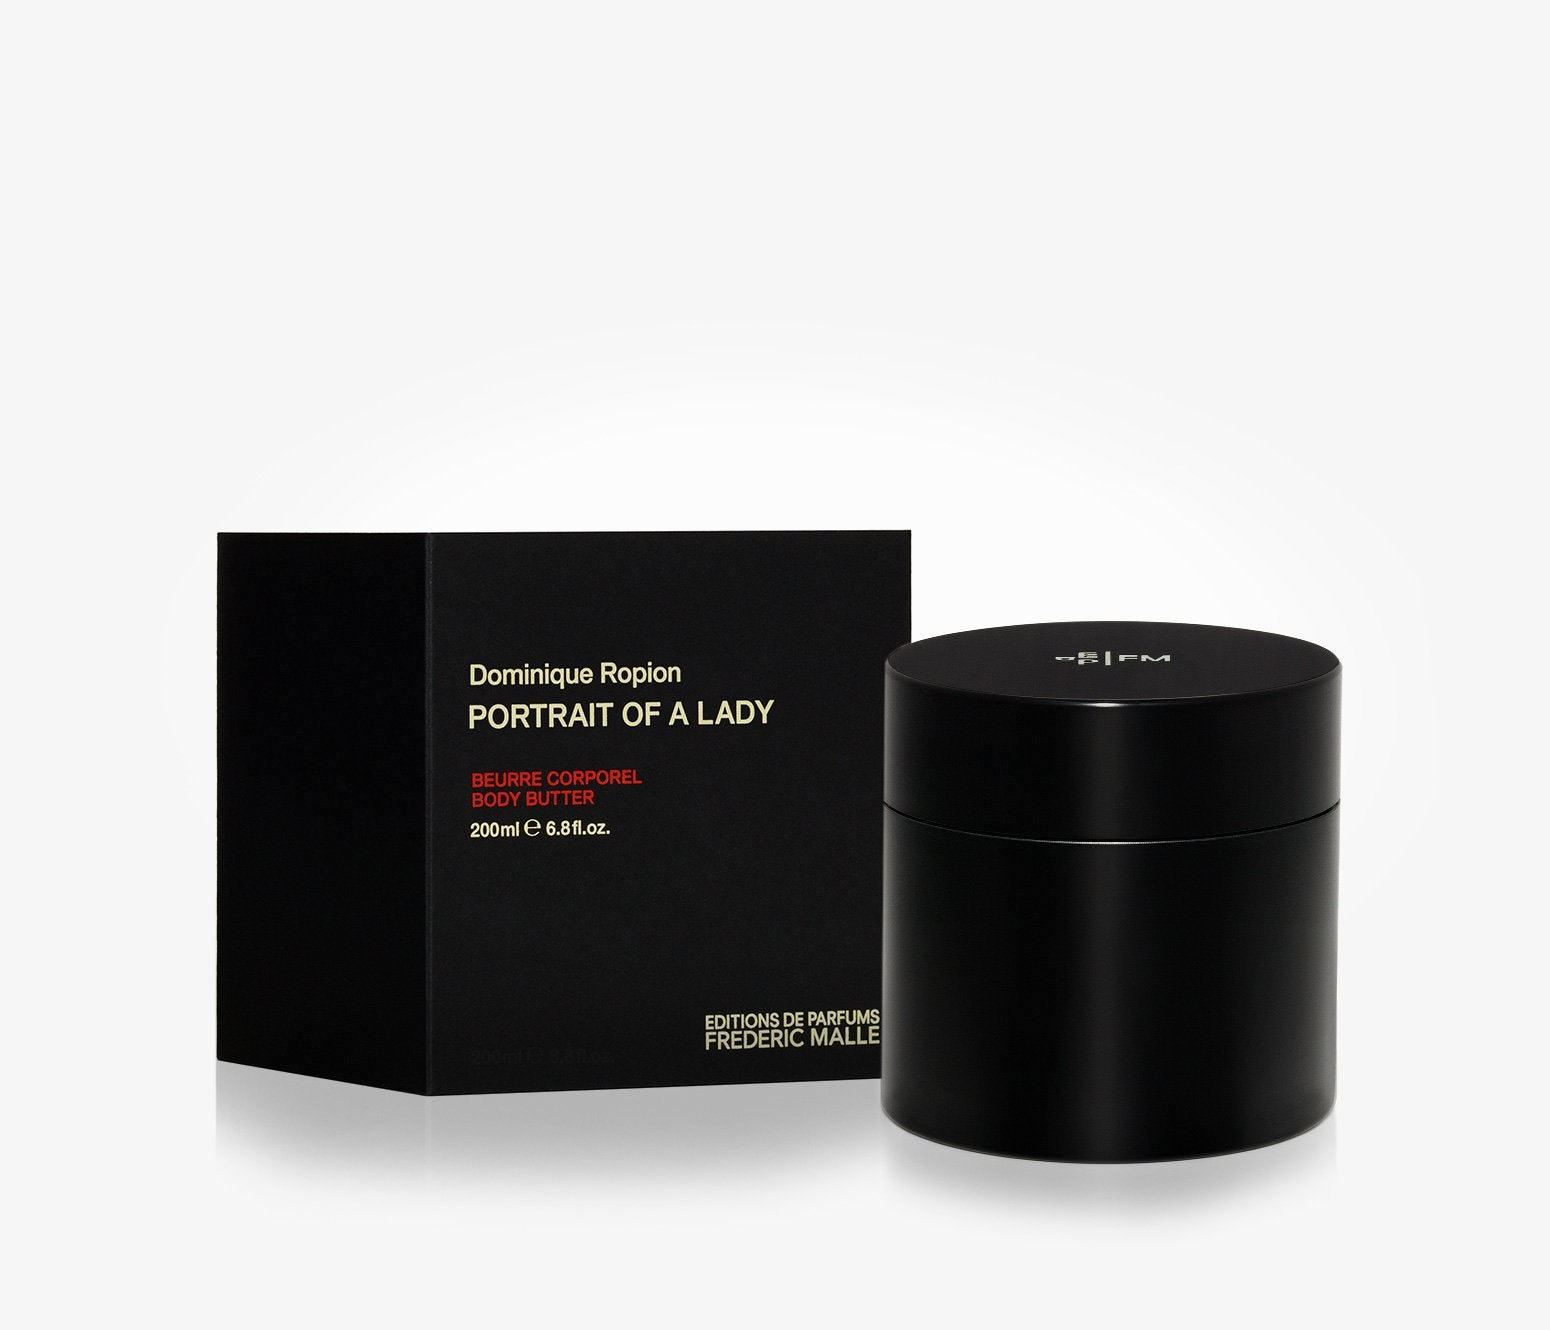 Frederic Malle - Portrait of a Lady Body Butter - 200ml - GYB5953 - Product Image - Body Butter - Les Senteurs